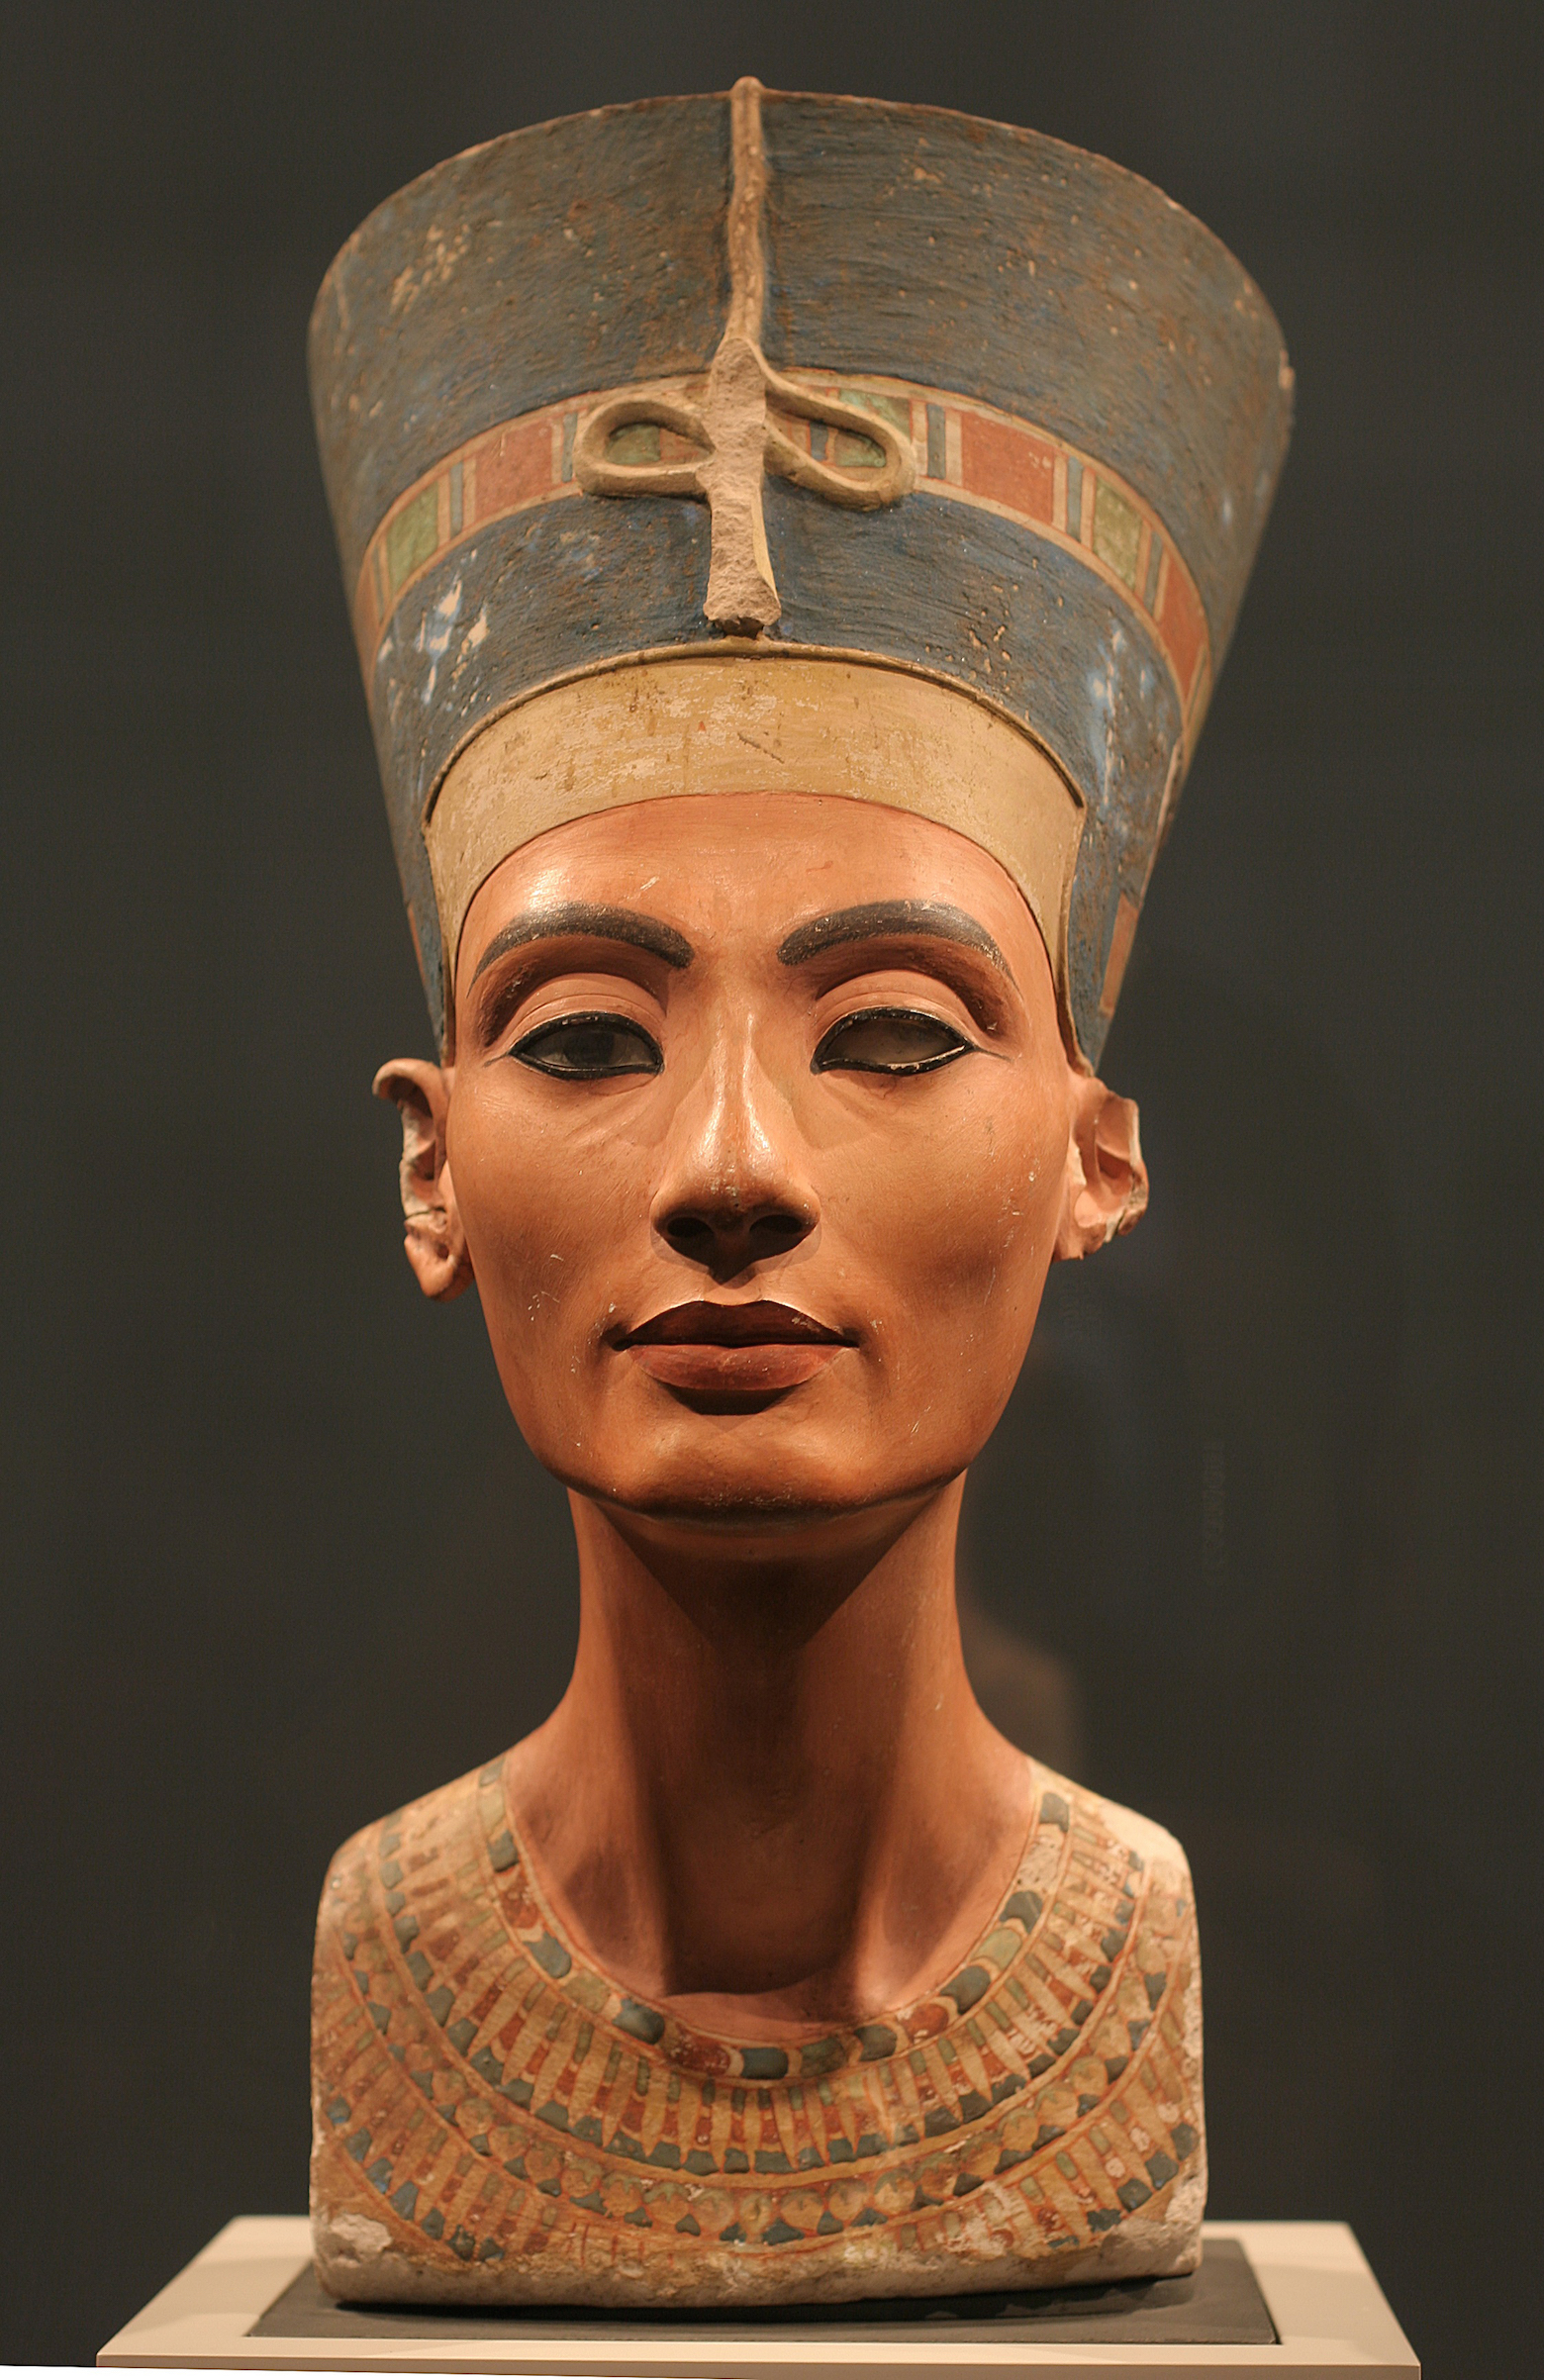 The Nefertiti Bust, ca 1350 BC. Found in the collection of the Staatliche Museen, Berlin.